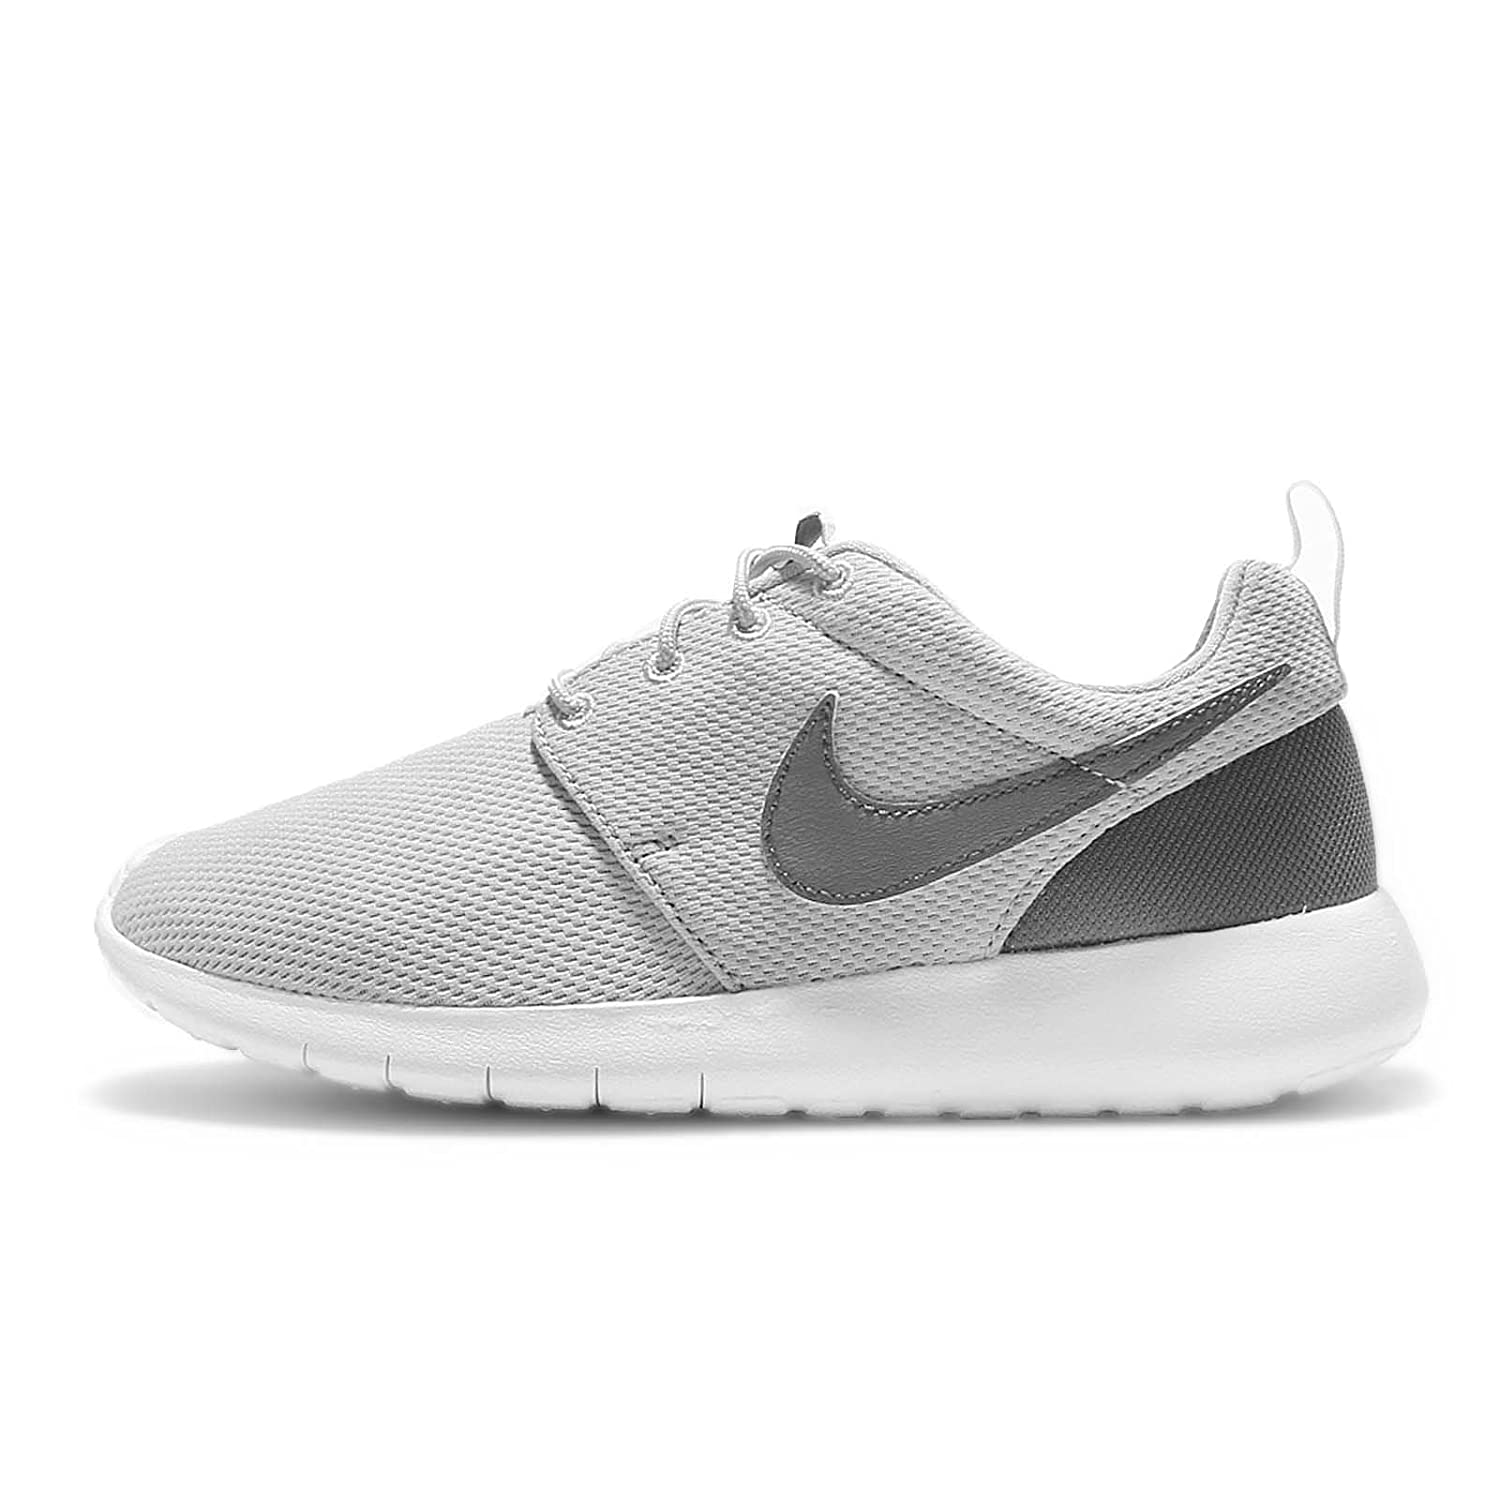 premium selection e1695 6526d Amazon.com  Nike Boys Grade School Roshe One Casual Shoes Wolf GreyCool  GreyWhite (7)  Running